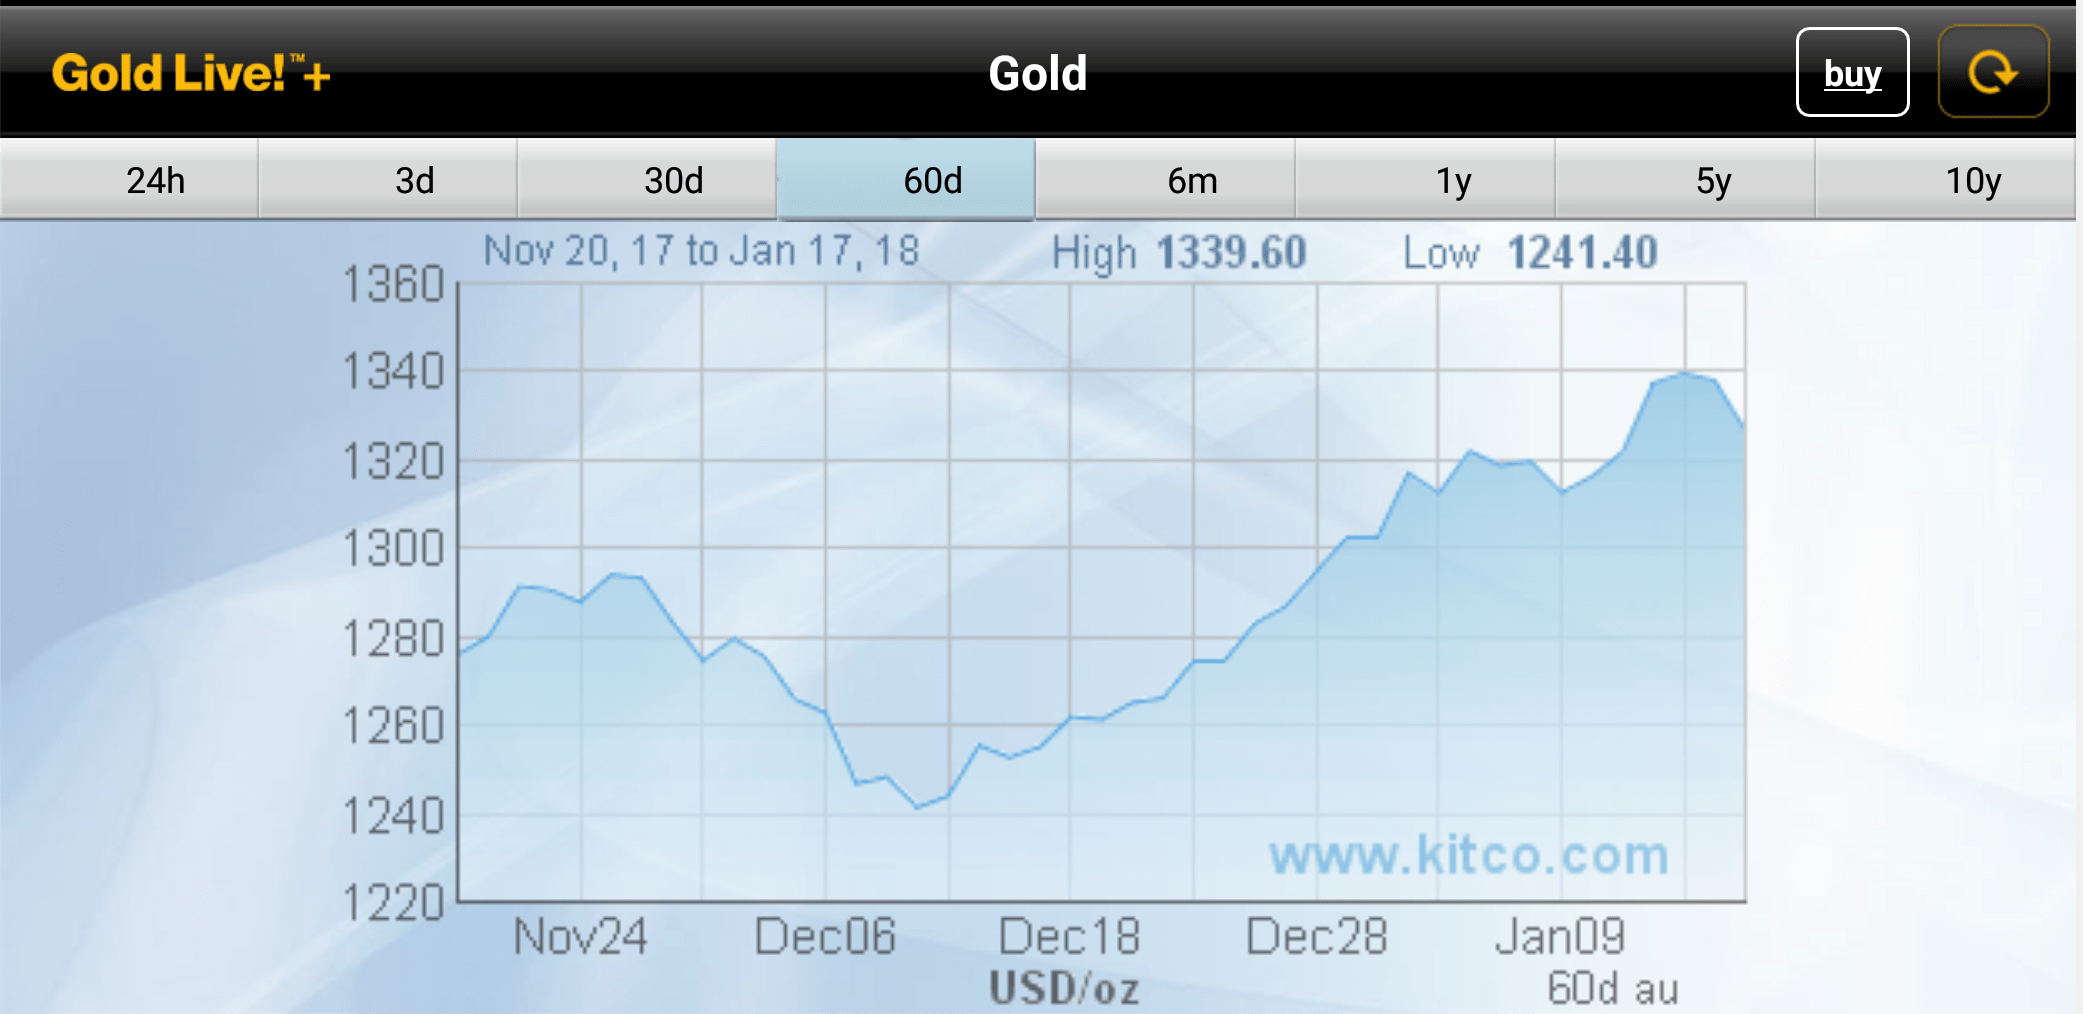 sell your gold